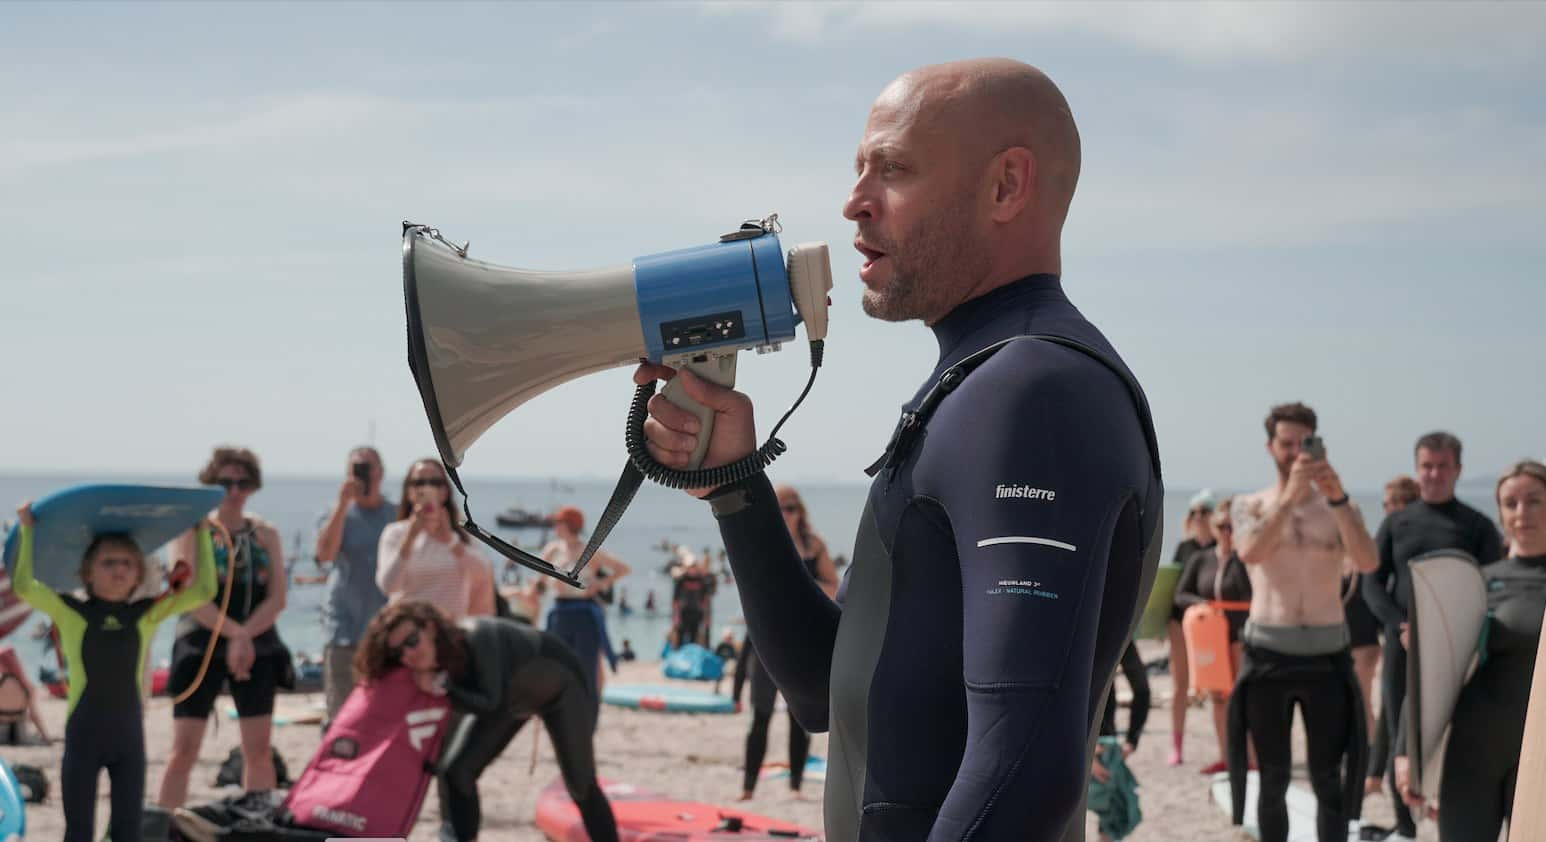 Hugo Tahholm, CEO of SAS, is pictured from the waist up in a wetsuit. He holds a megaphone and speaks through it to assembled protestors on the beach, who can be seen in the background.